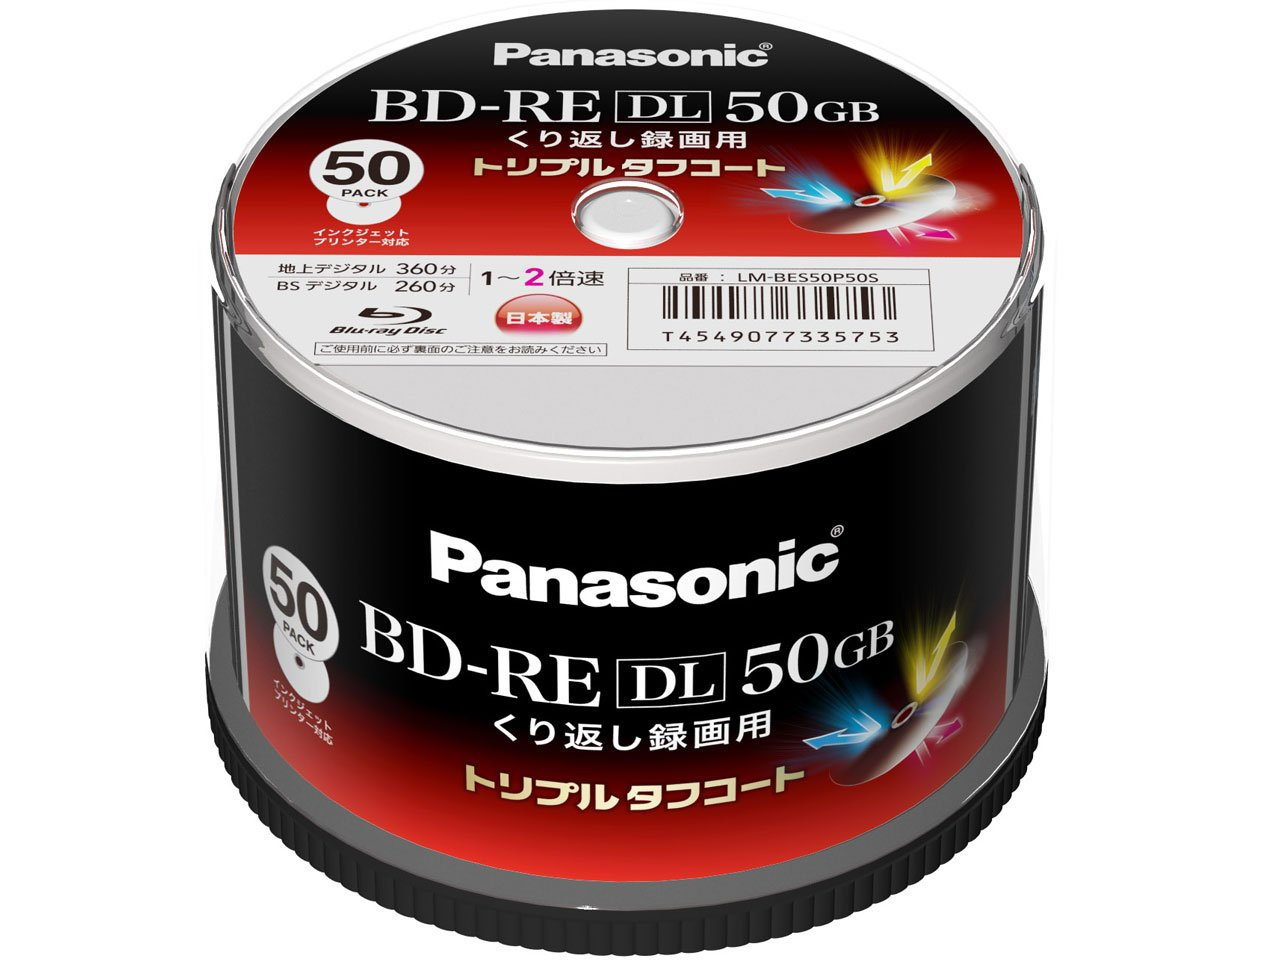 Panasonic Blu-ray BD-RE Recordable DL Disk | 50GB 2x Speed | 50 Pack in Spindle Ink-jet Printable